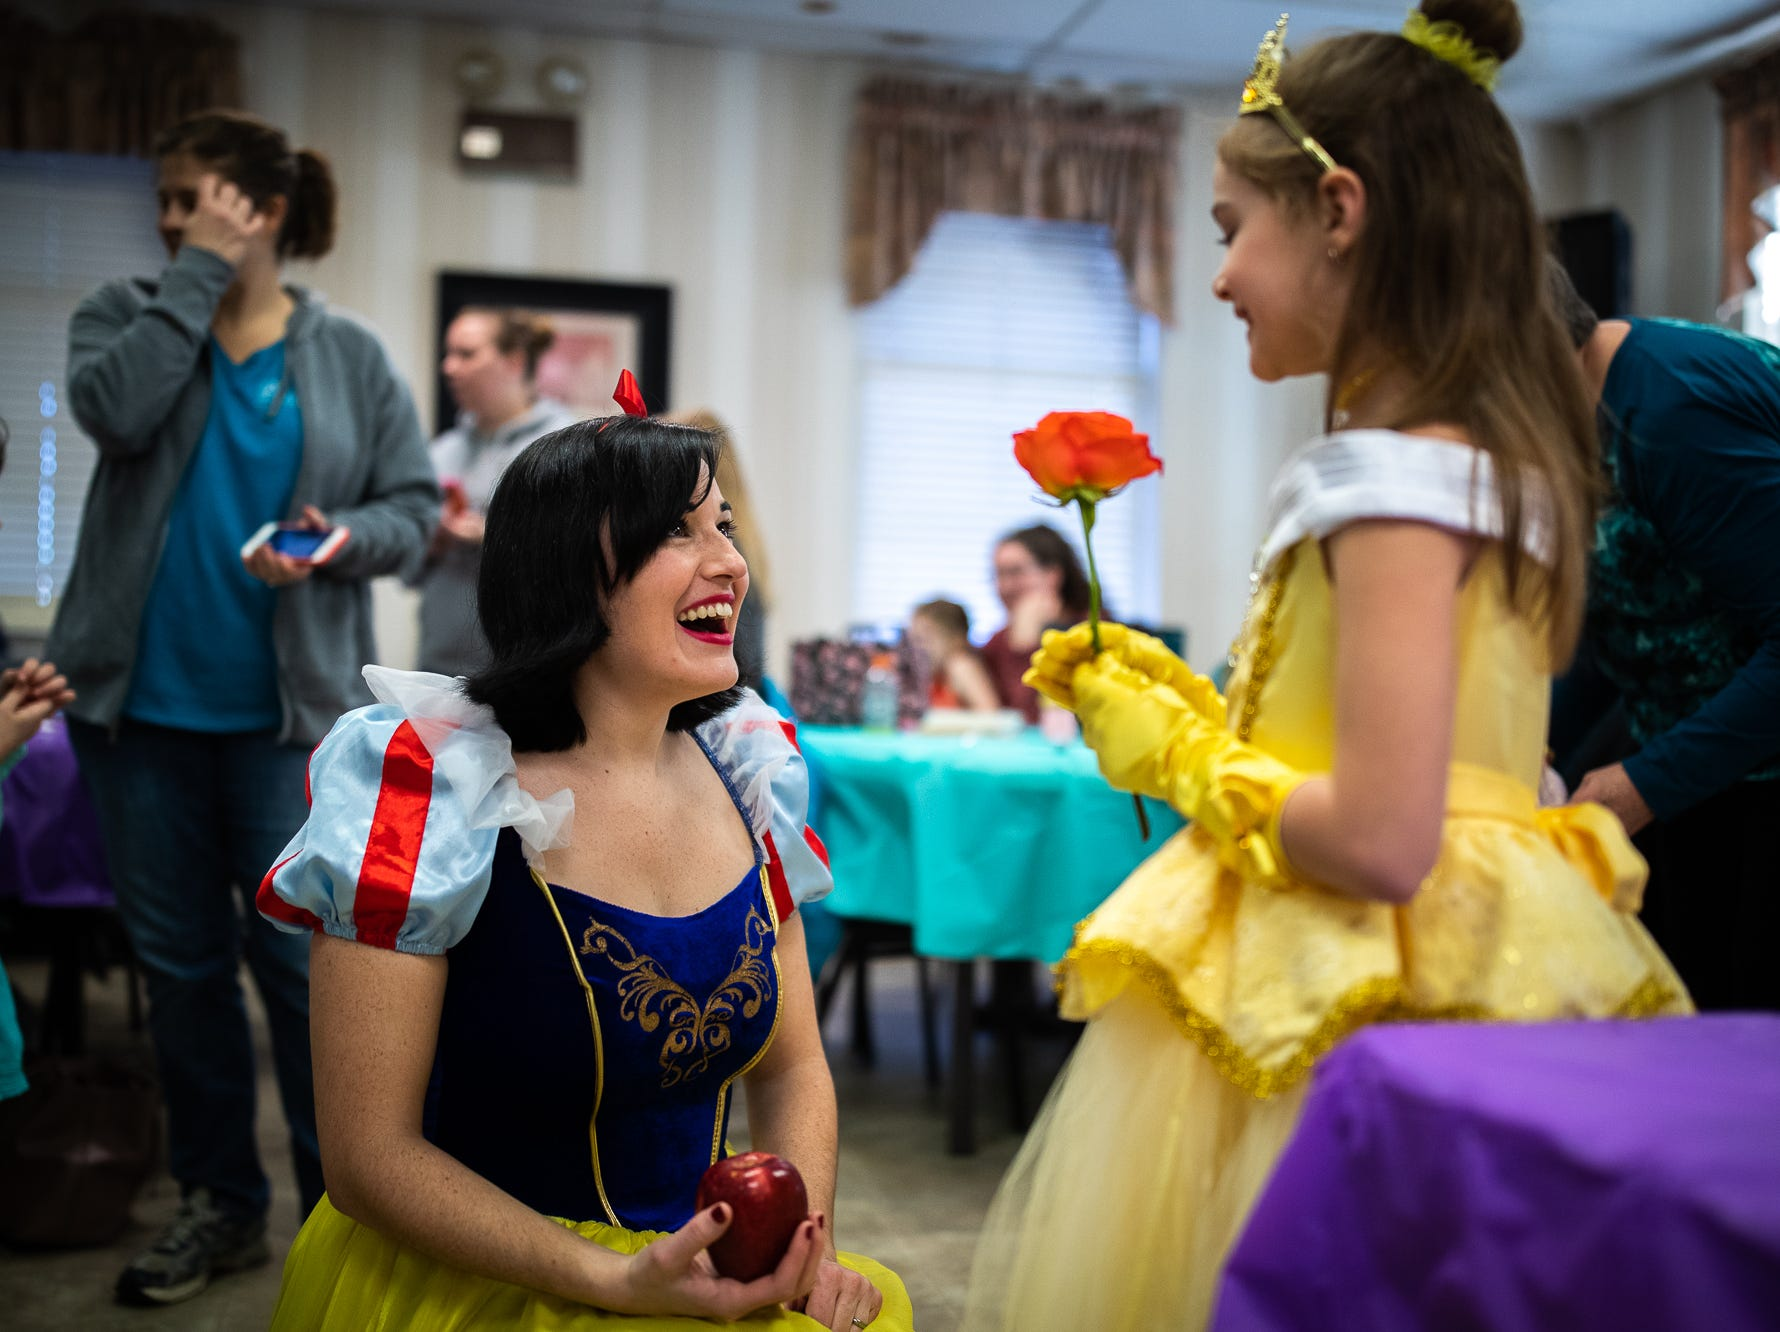 Princess Snow White smiles at Skylar, 6, dressed as princess Belle, during a princess teatime hosted by the Black Rose Rollers, Saturday, Feb. 9, 2019, at the Hanover YWCA.